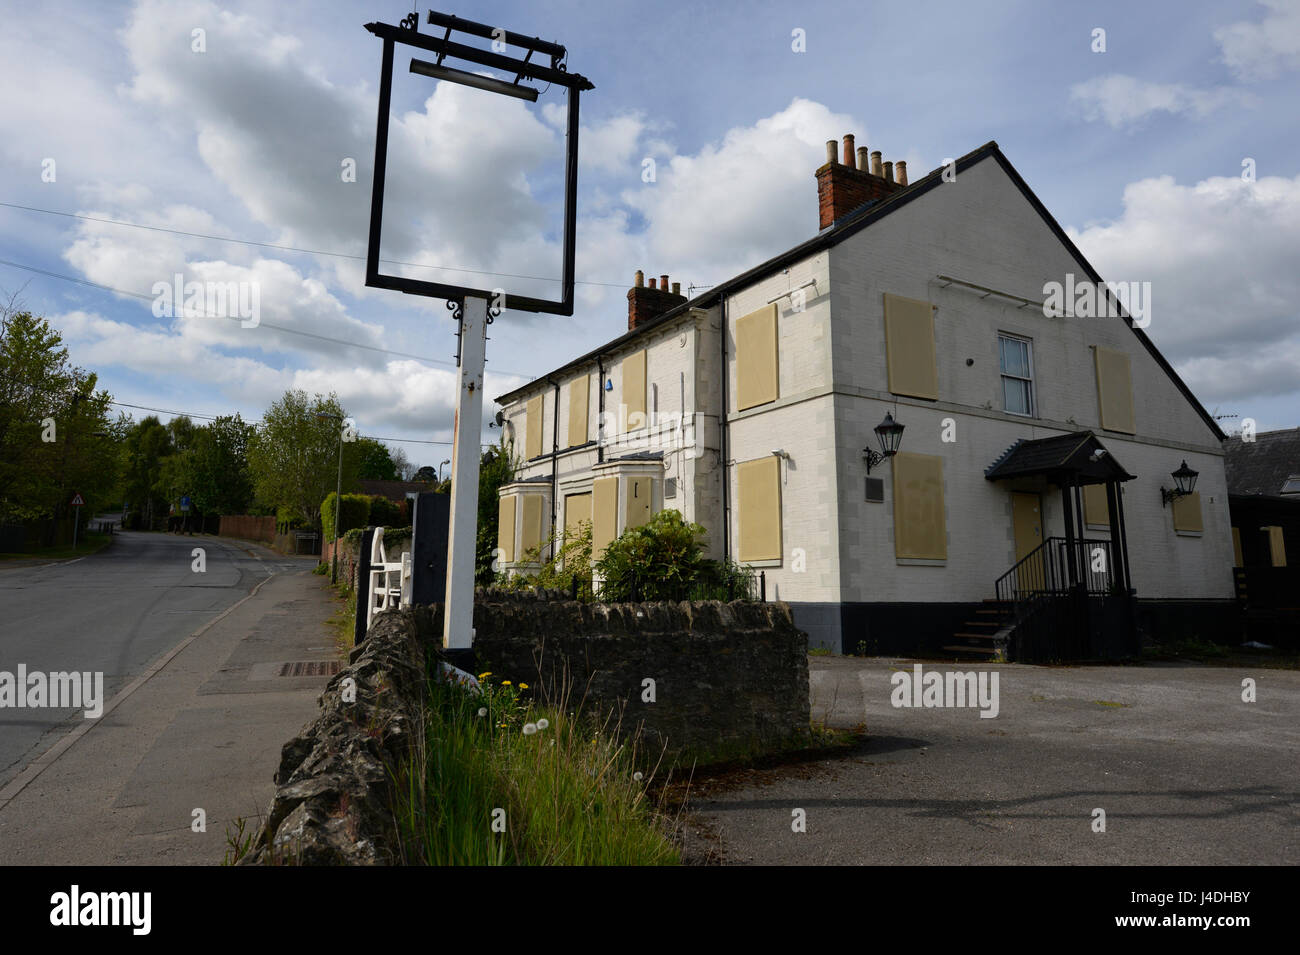 The Railway Hotel, Wheatley, Oxon.  A shuttered and boarded up pub - Stock Image